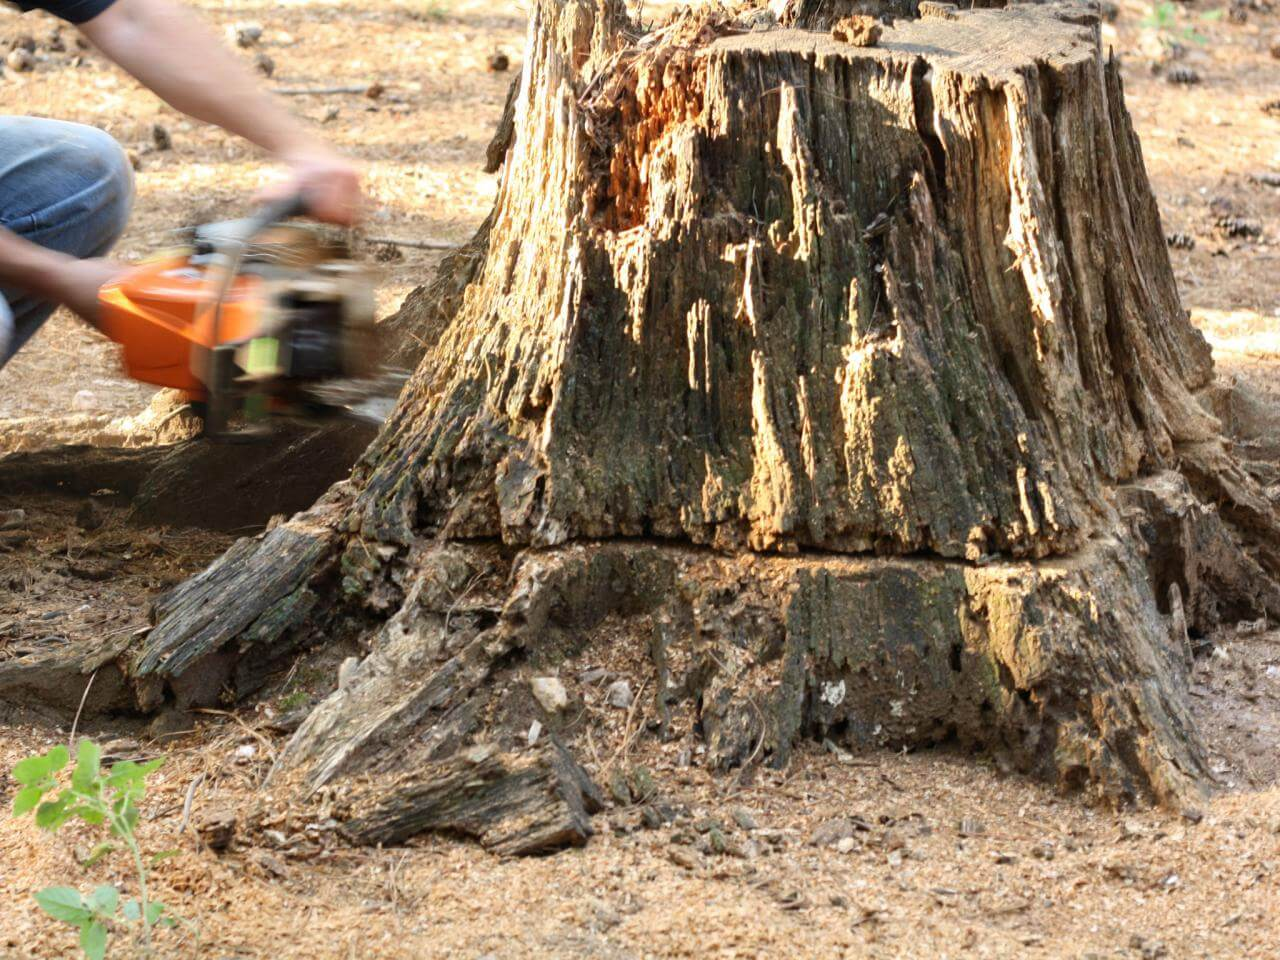 Stump Removal-Temecula Tree Trimming and Stump Grinding Services-We Offer Tree Trimming Services, Tree Removal, Tree Pruning, Tree Cutting, Residential and Commercial Tree Trimming Services, Storm Damage, Emergency Tree Removal, Land Clearing, Tree Companies, Tree Care Service, Stump Grinding, and we're the Best Tree Trimming Company Near You Guaranteed!